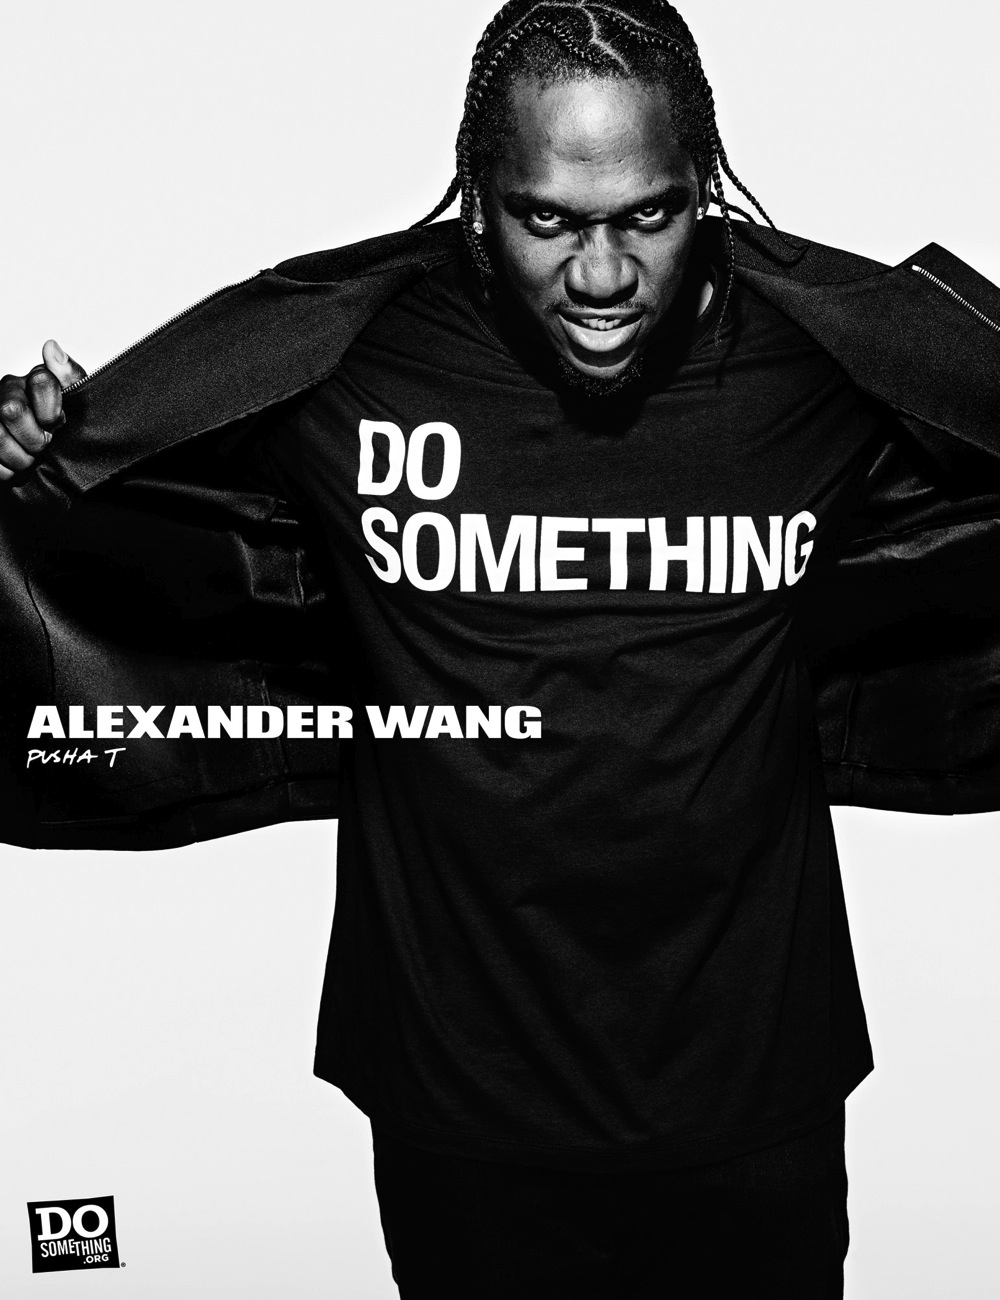 Pusha T wears Alexander Wang x DoSomething